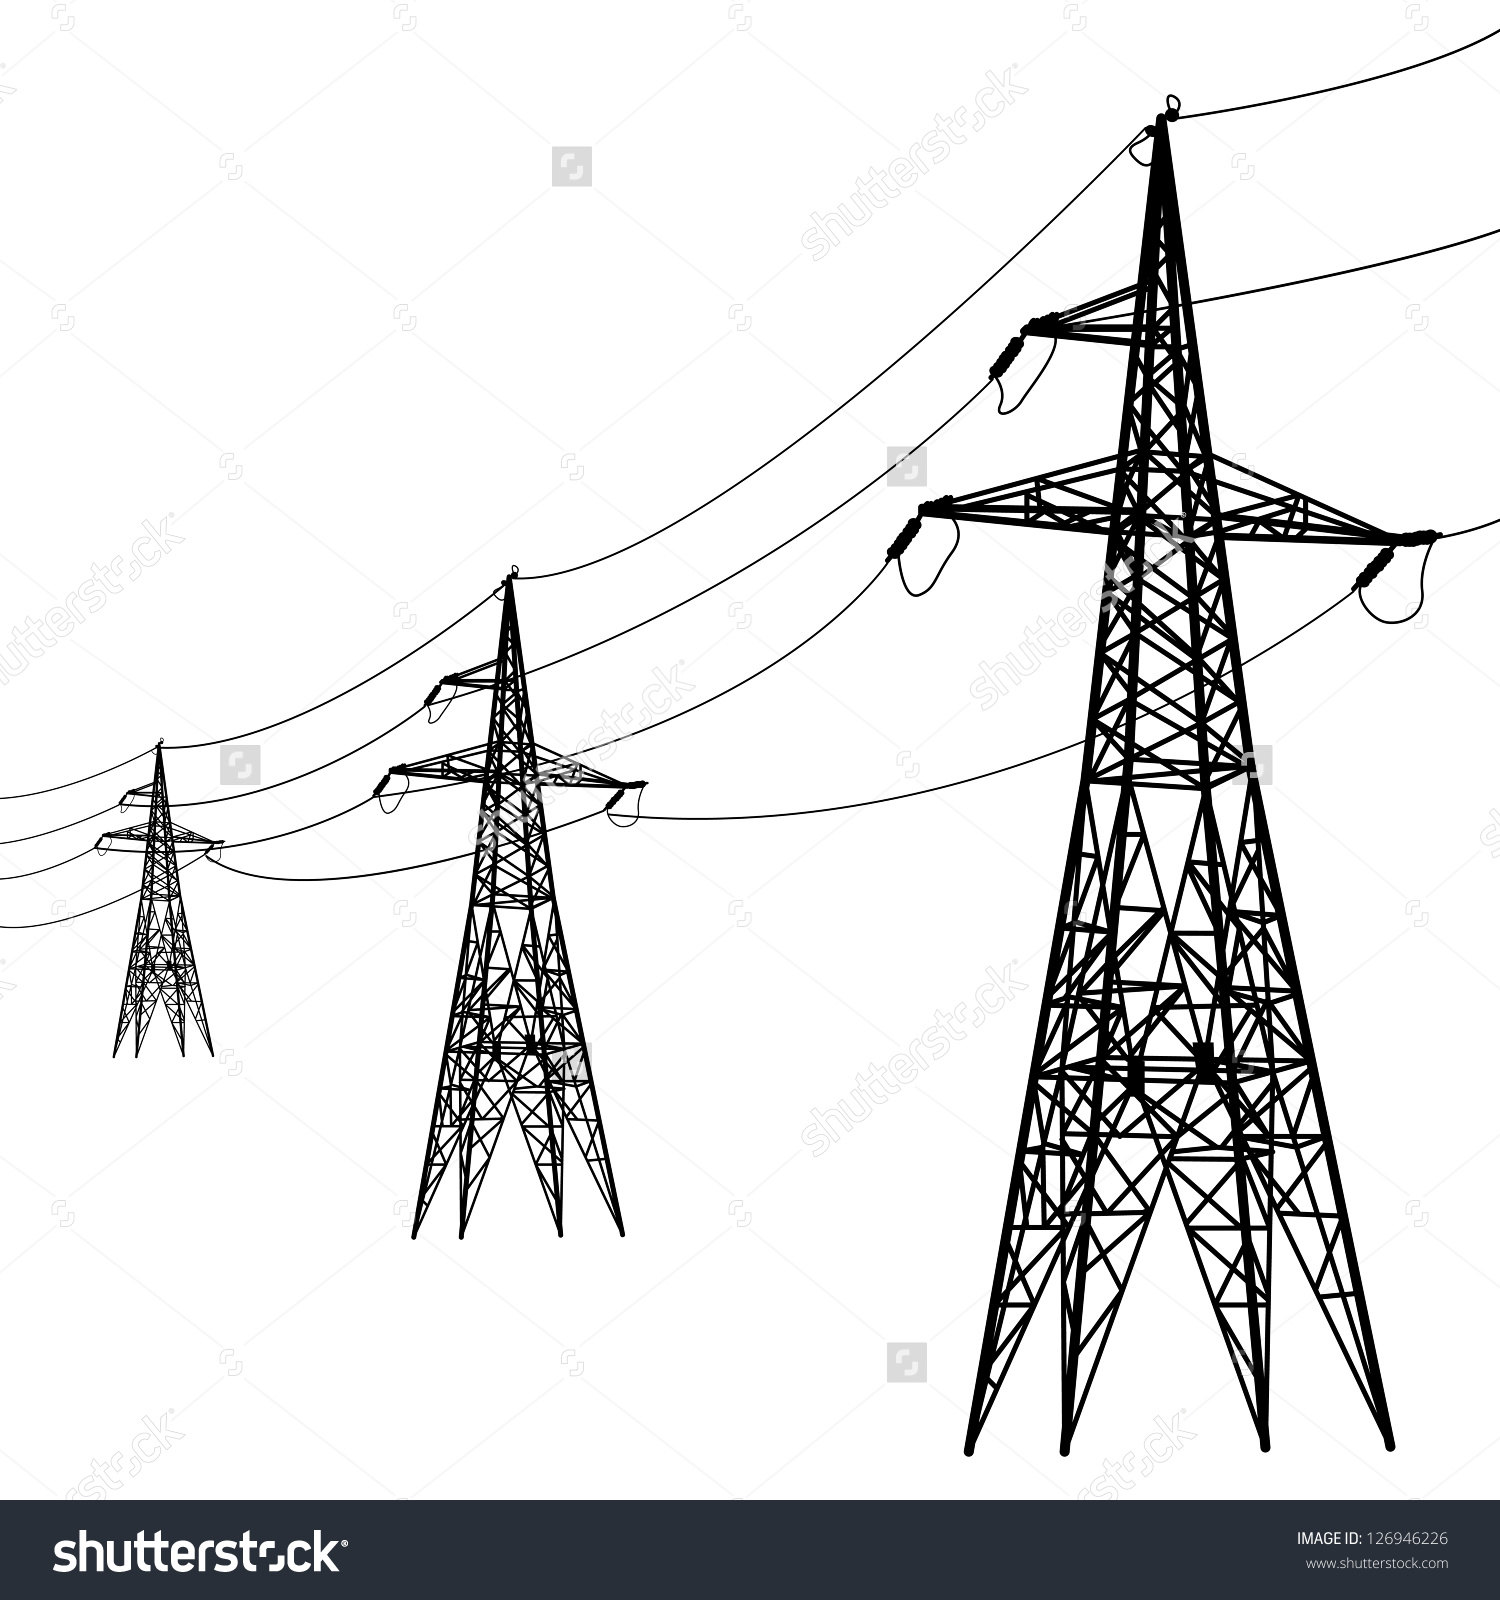 Silhouette High Voltage Power Lines Vector Stock Vector 126946226.